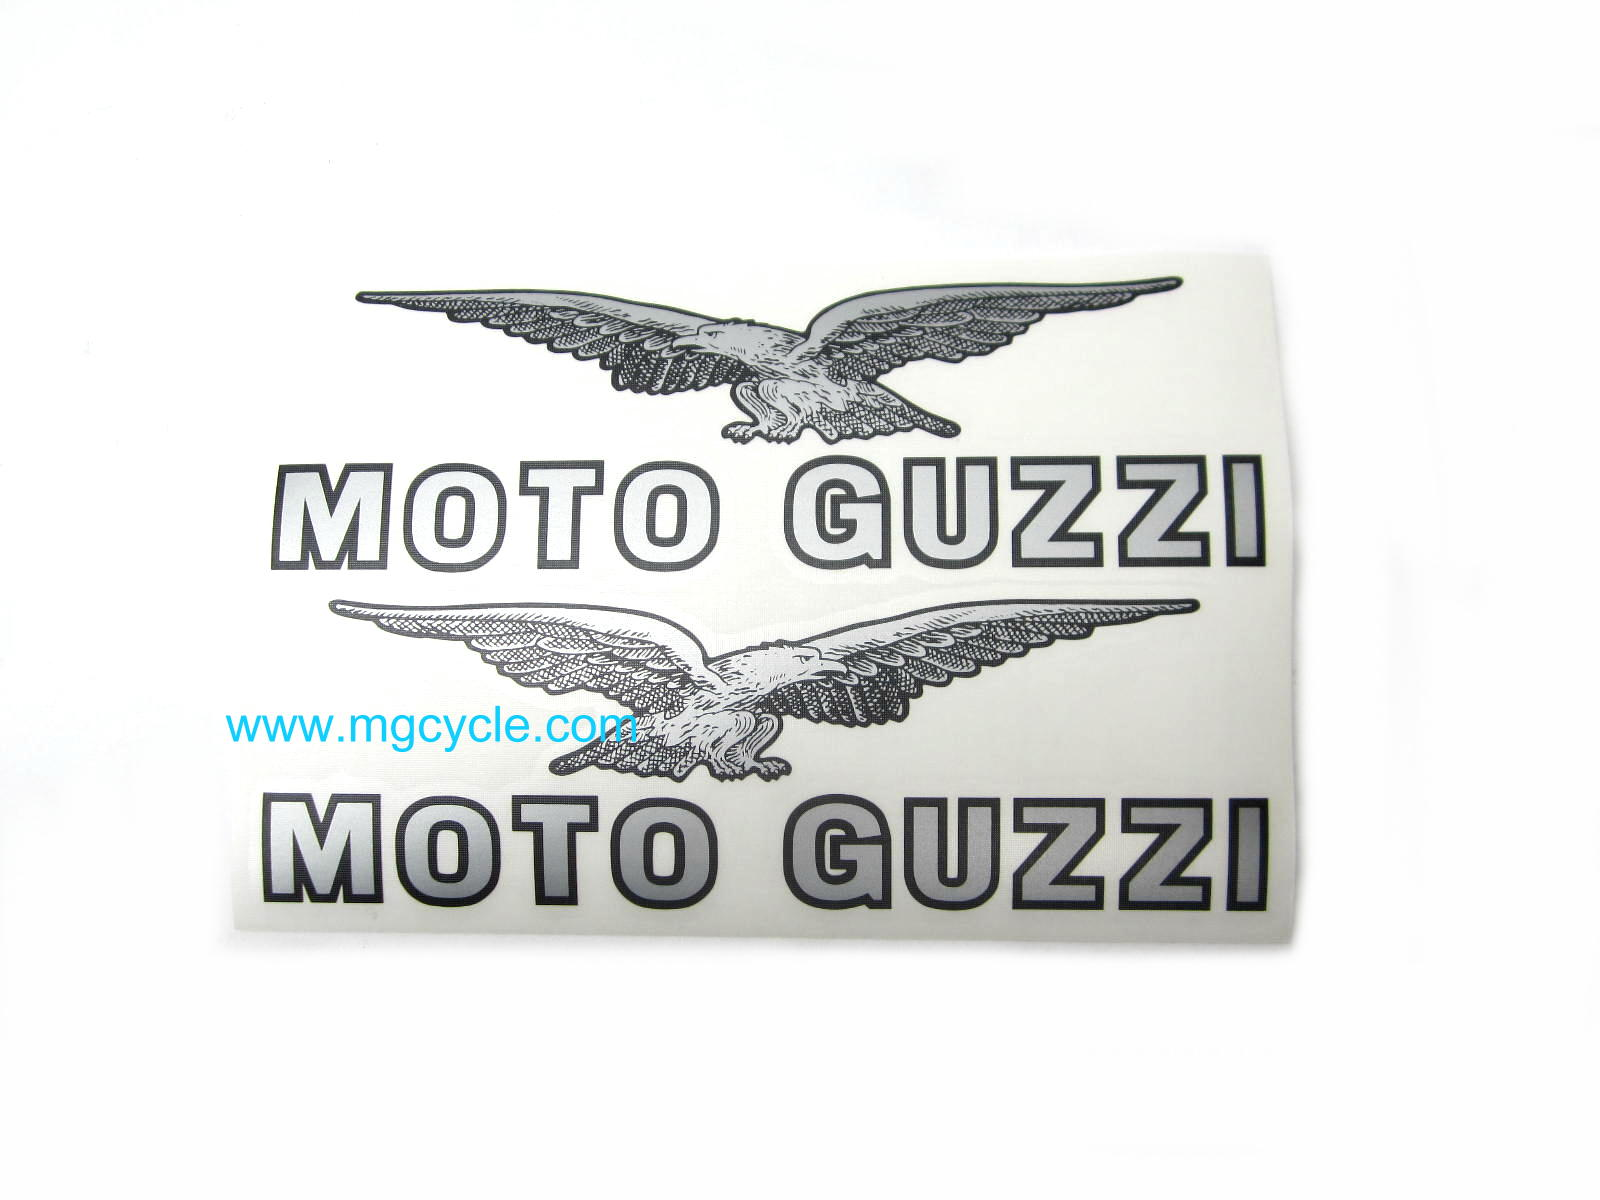 Fuel tank decal set, black and silver, pair